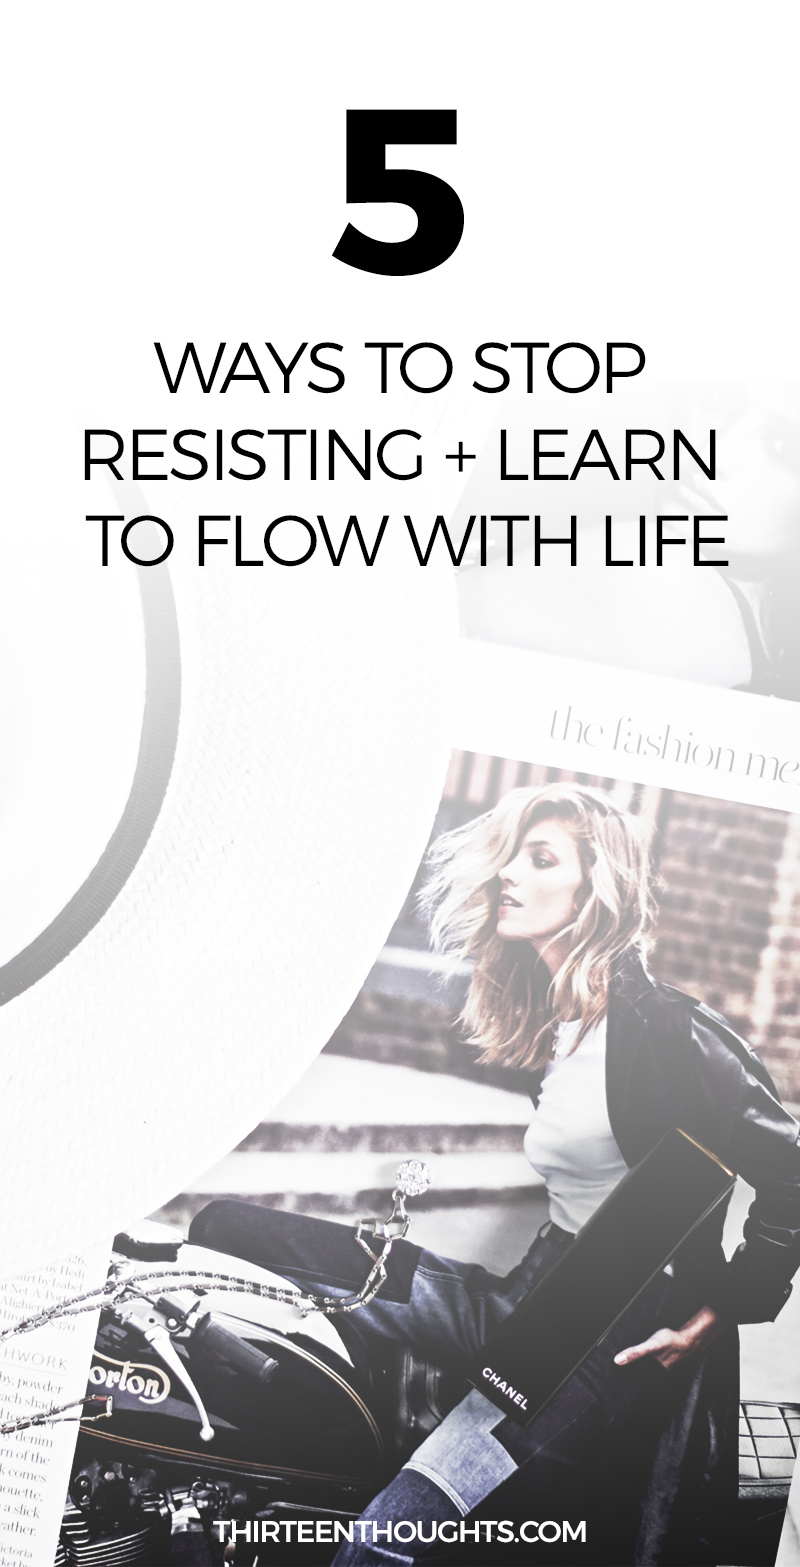 How to Stop Resisting + Flow With Life